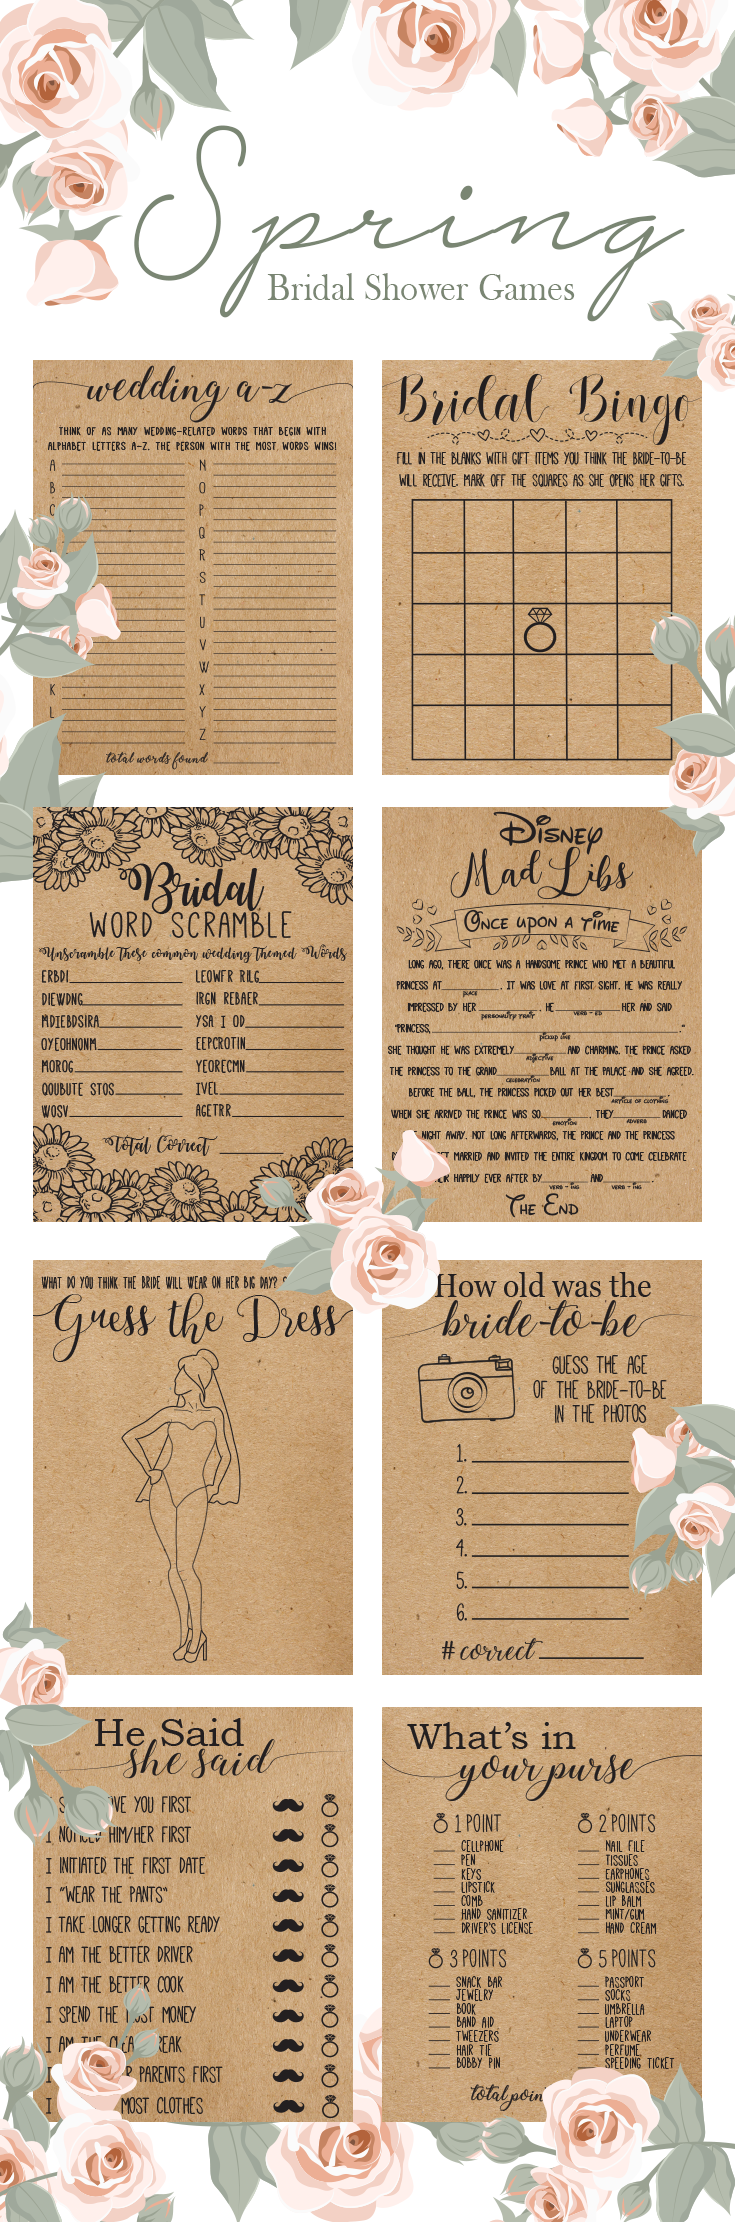 guess who bridal shower game printable%0A Would She Rather Bridal Shower Game  Bridal Shower Game  Bachelorette  Party  Bachelorette Games  What Would the Bride Do Game  Bridal Games   Bridal  shower